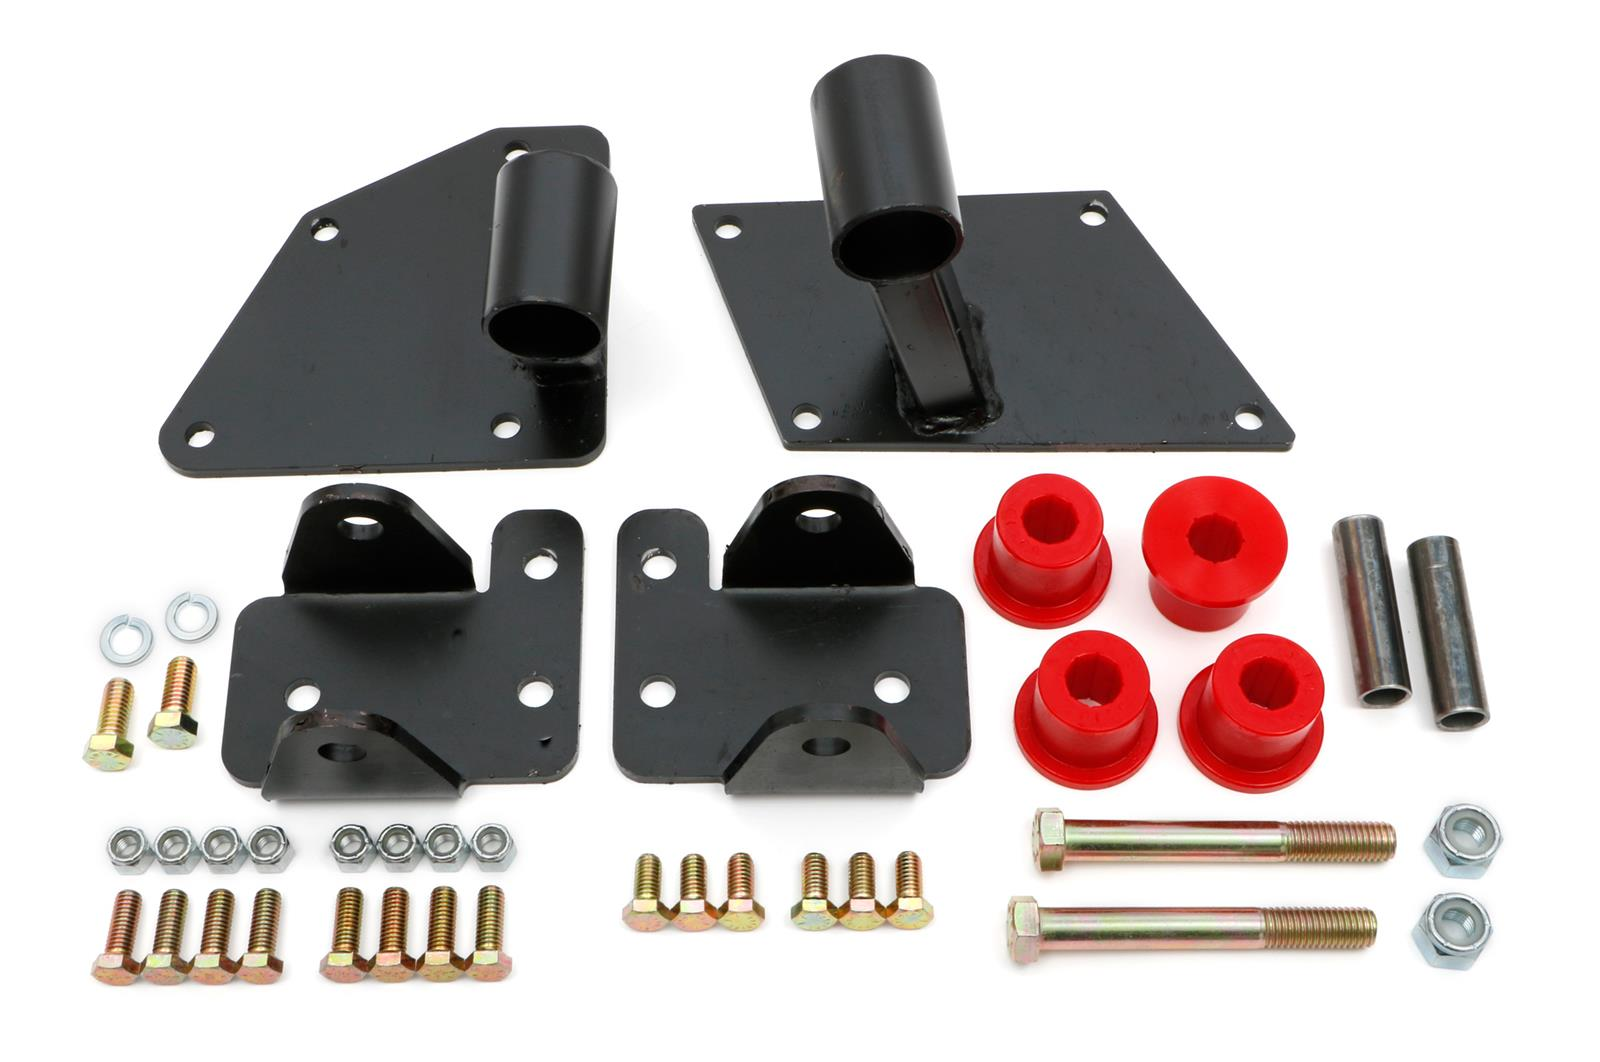 Trans Dapt Performance Engine Swap Motor Mounts  Free Shipping On Orders Over  At Summit Racing